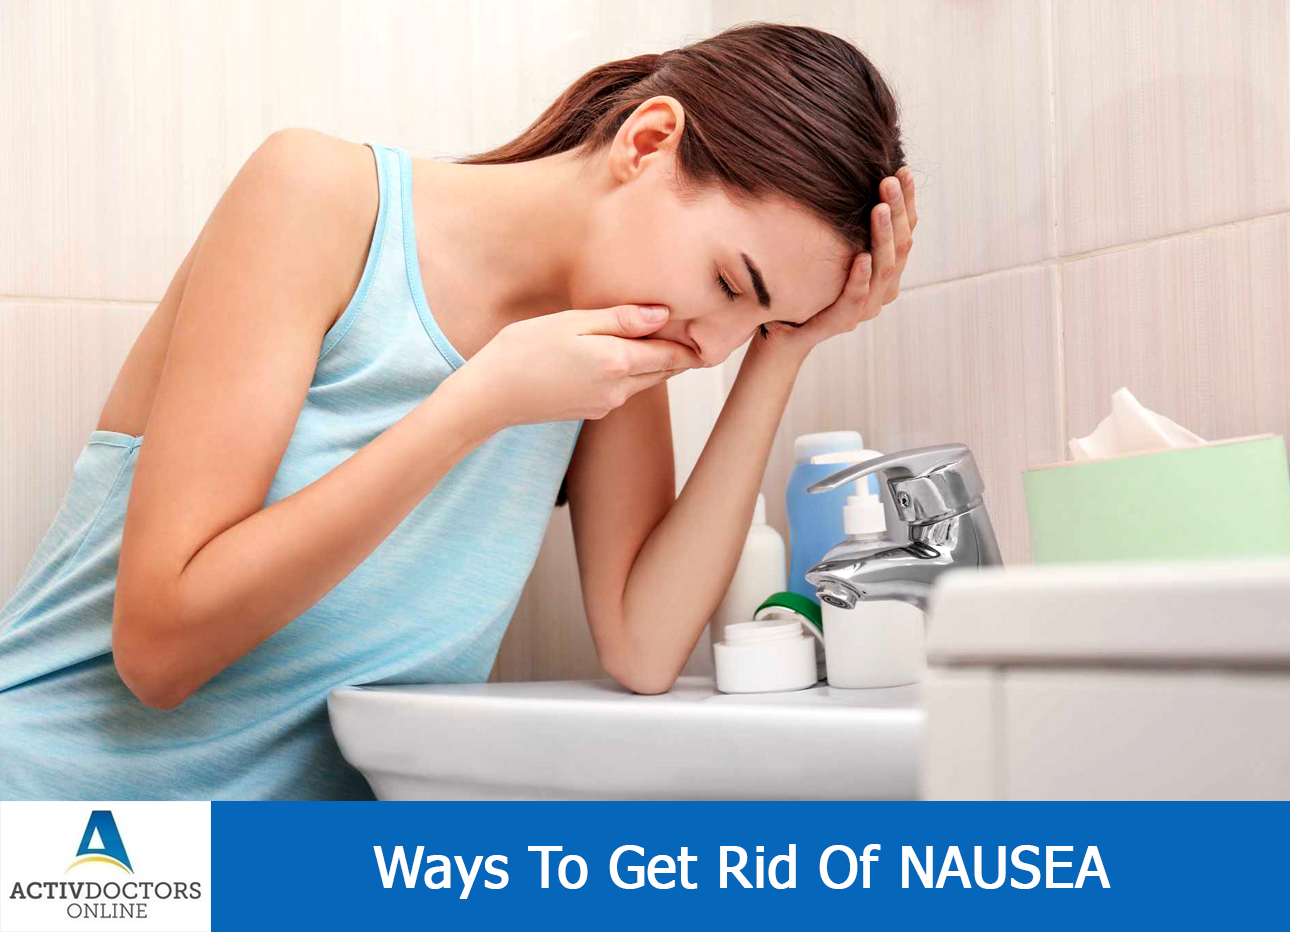 Ways To Get Rid Of NAUSEA